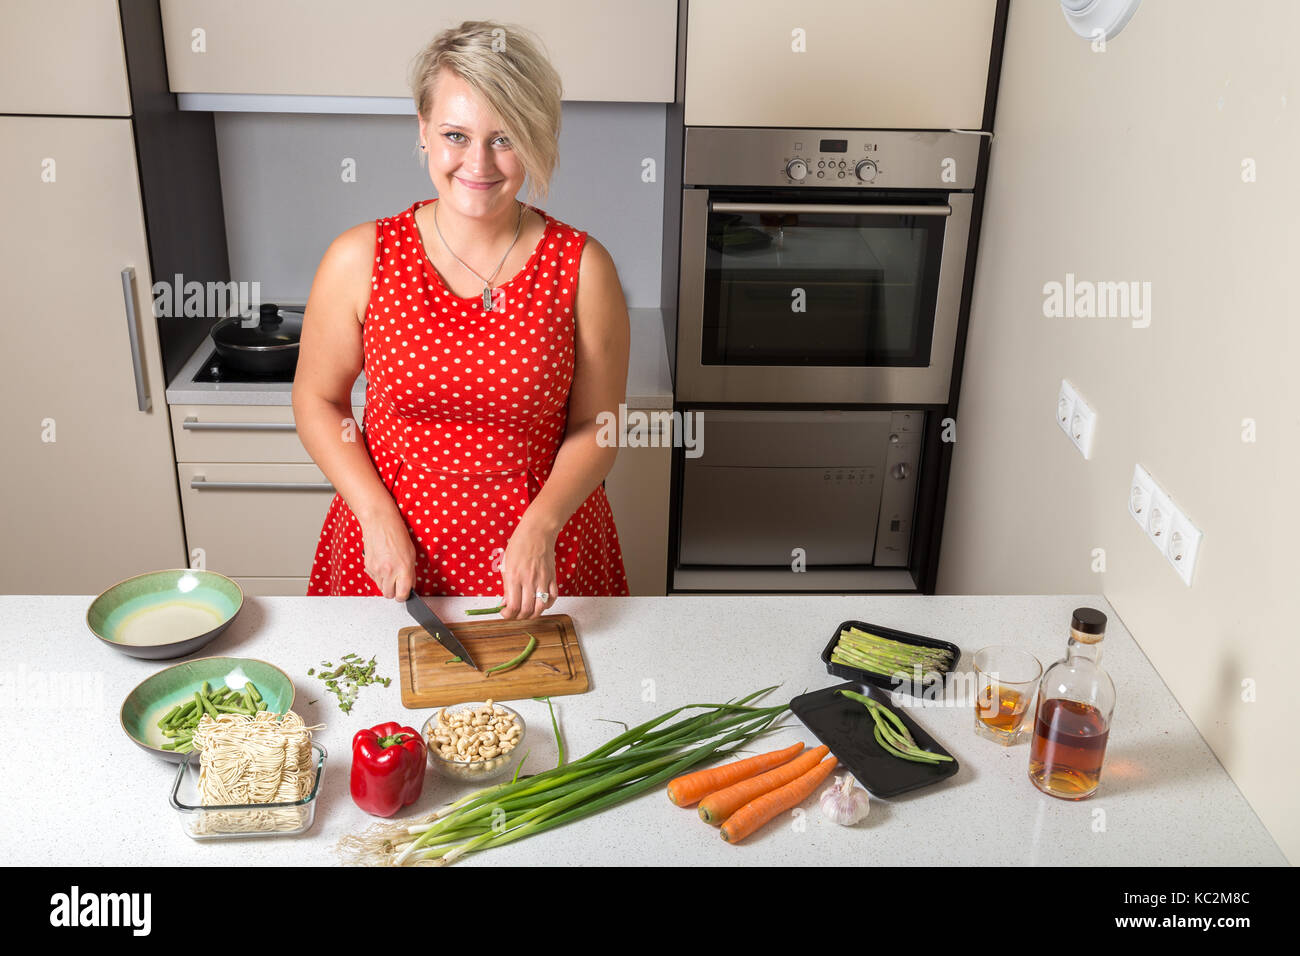 Girl smiling and cutting asparagus - Stock Image